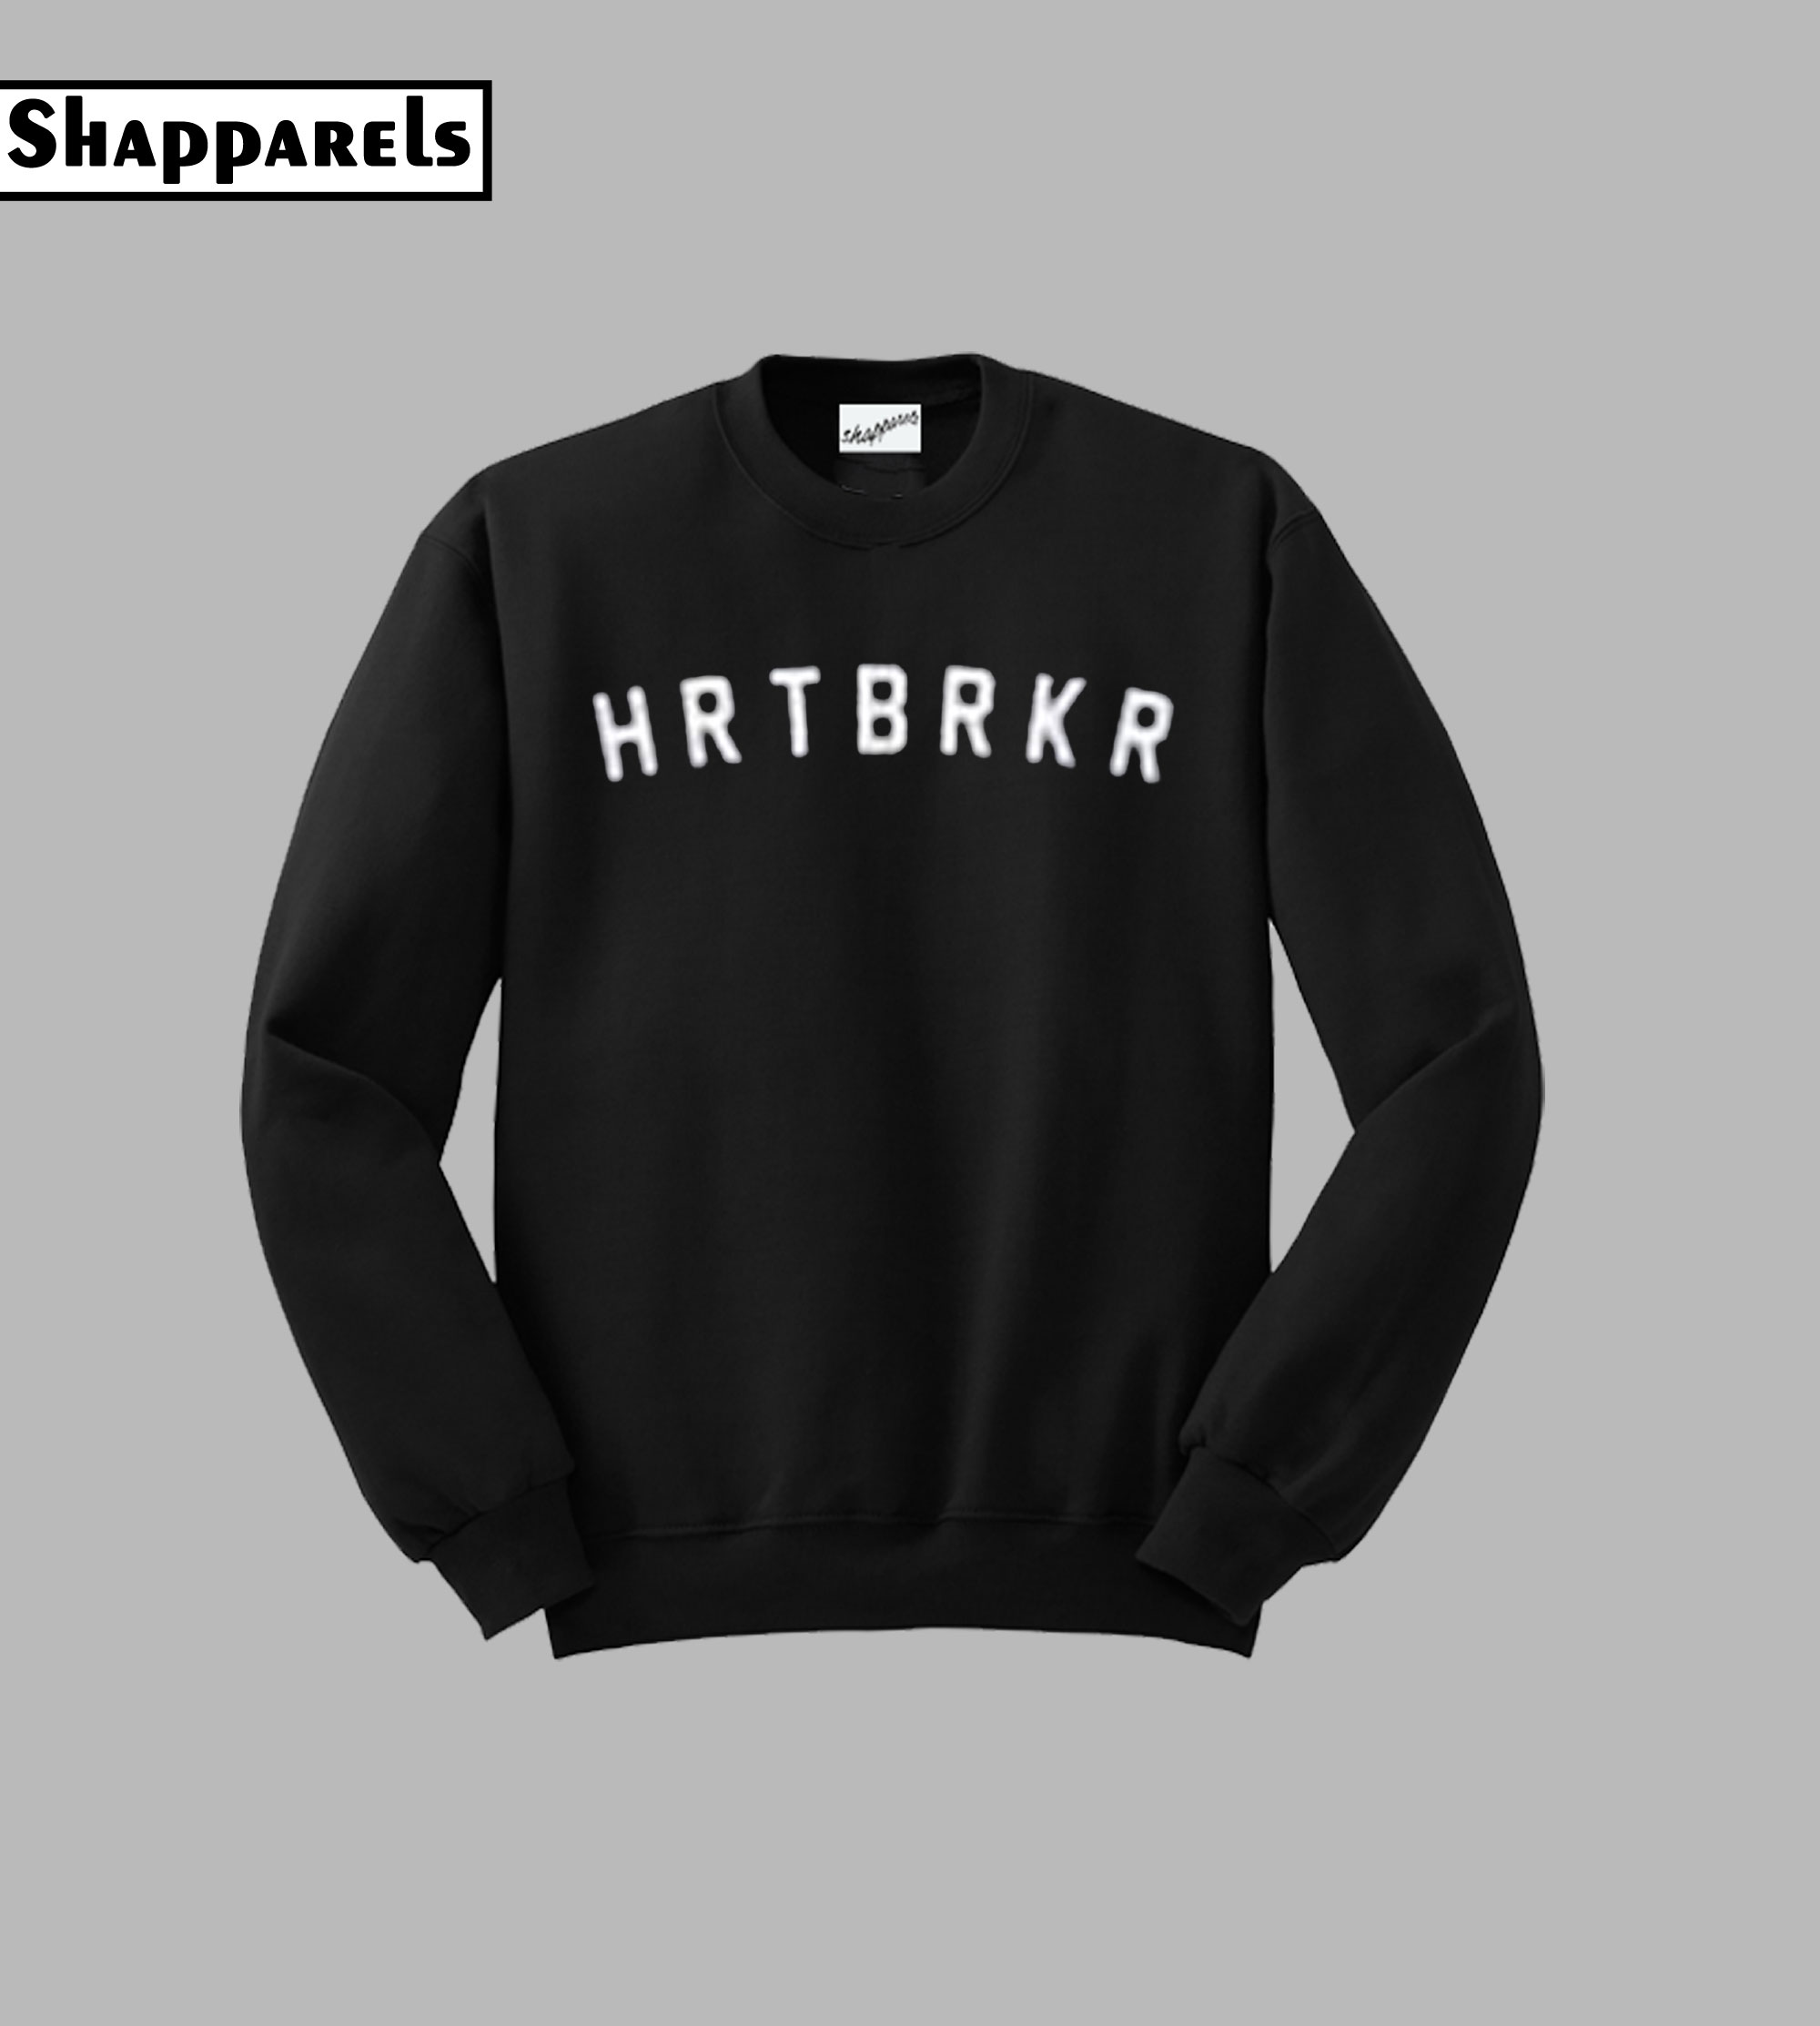 HRTBRKR Heart Breaker Sweatshirt